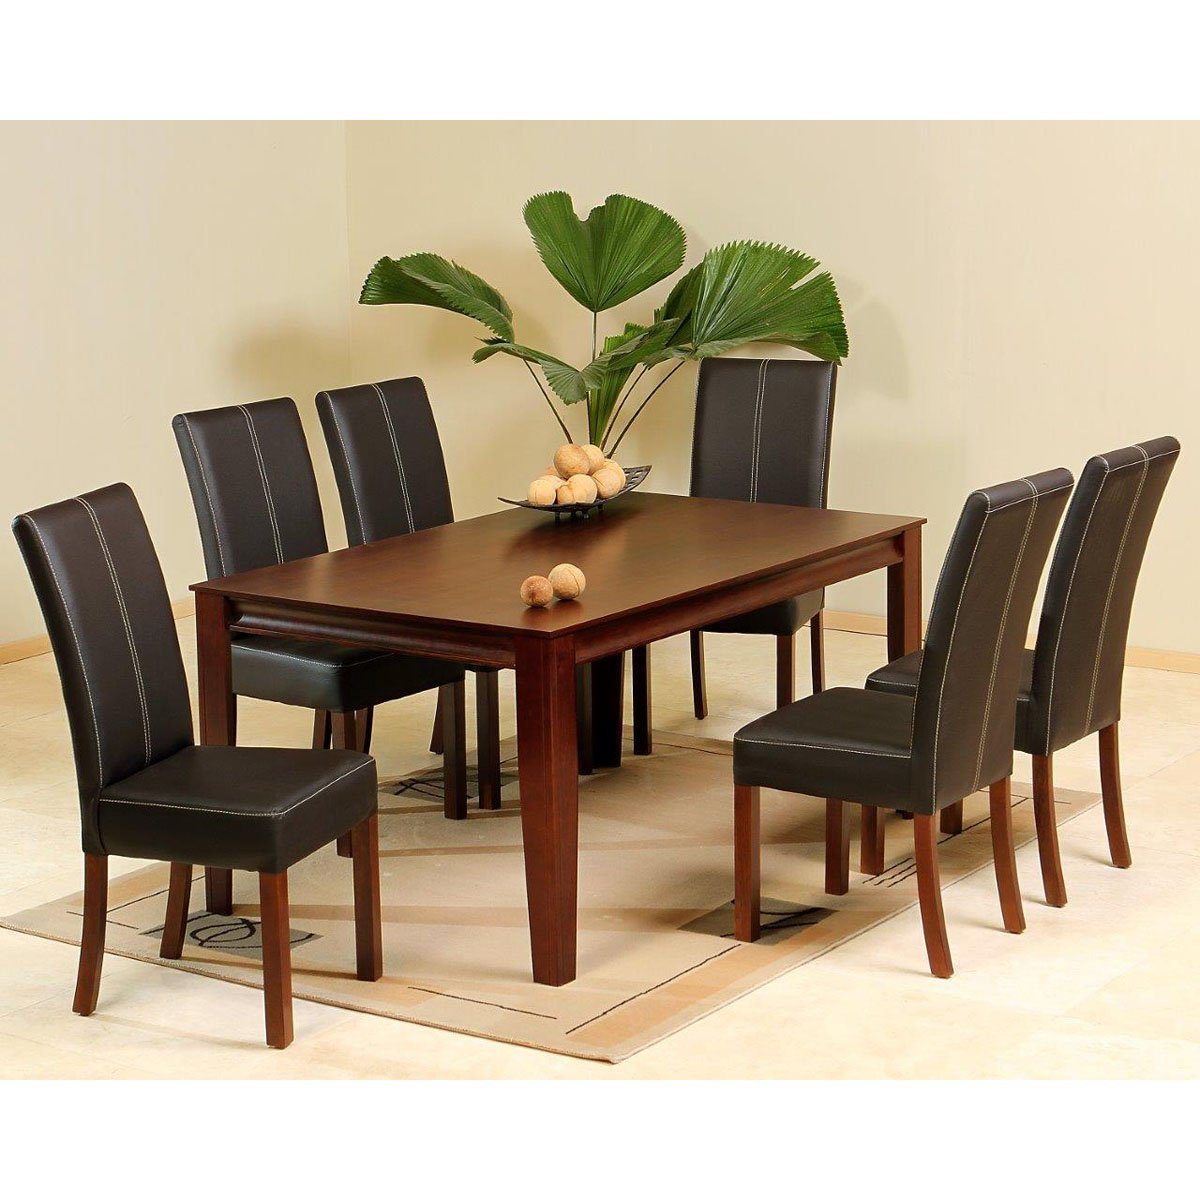 Comedor munich mesa 6 sillas sears com mx me entiende for Mesa comedor original